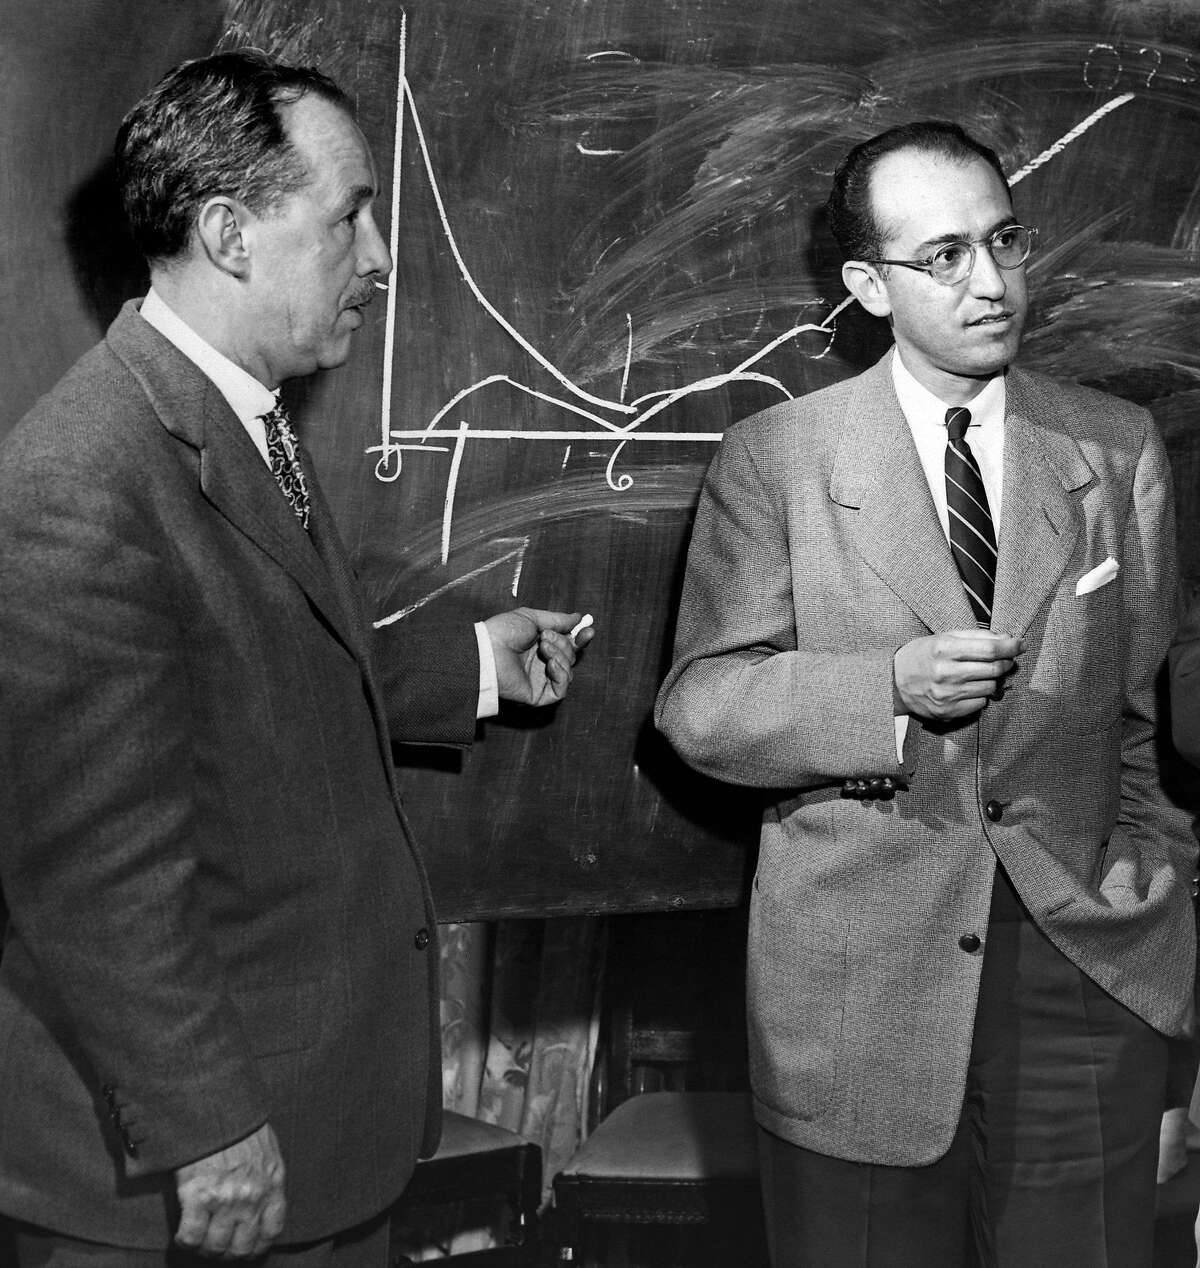 This March 25, 1955 photo shows Dr. Thomas Francis, Jr. of the University of Michigan, left, and his former student, Dr. Jonas Salk of Pittsburgh. Salk has developed and tested an anti-polio vaccine which may be ready for 18,000,000 children this spring and summer. (AP Photo)